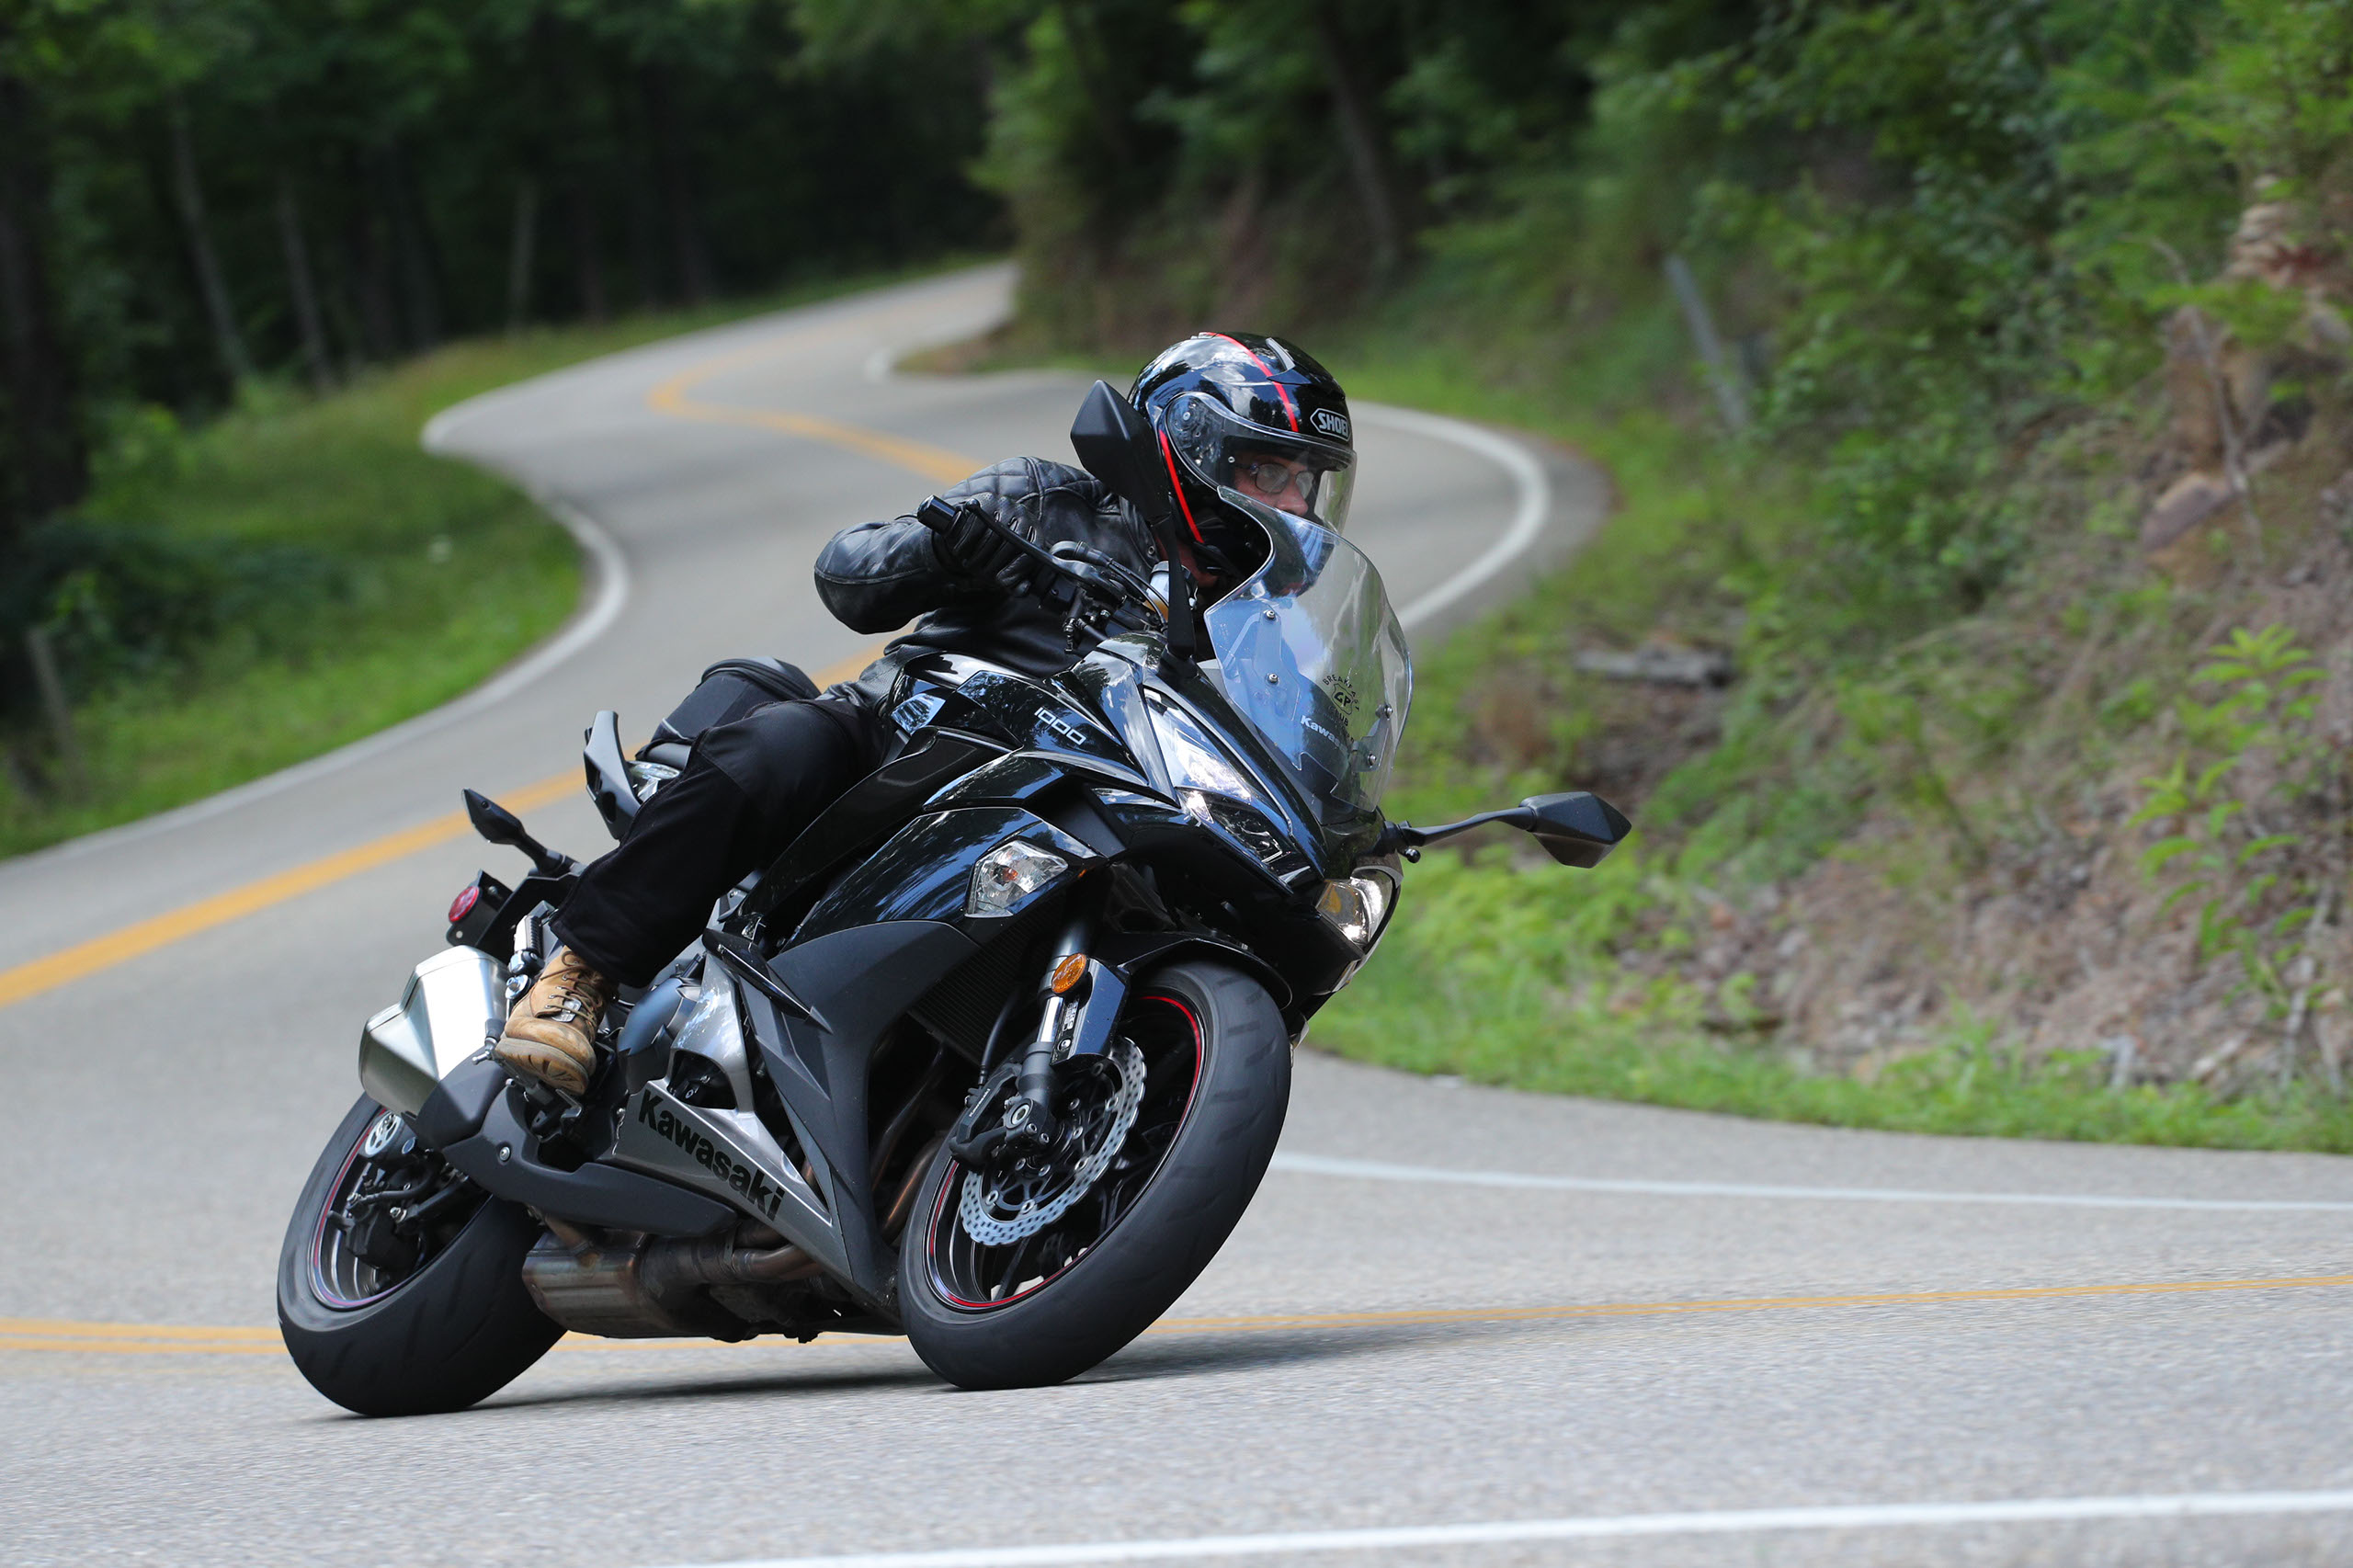 129 Slayer photos on the dragon | 129 | deals gap | the tail of the dragon